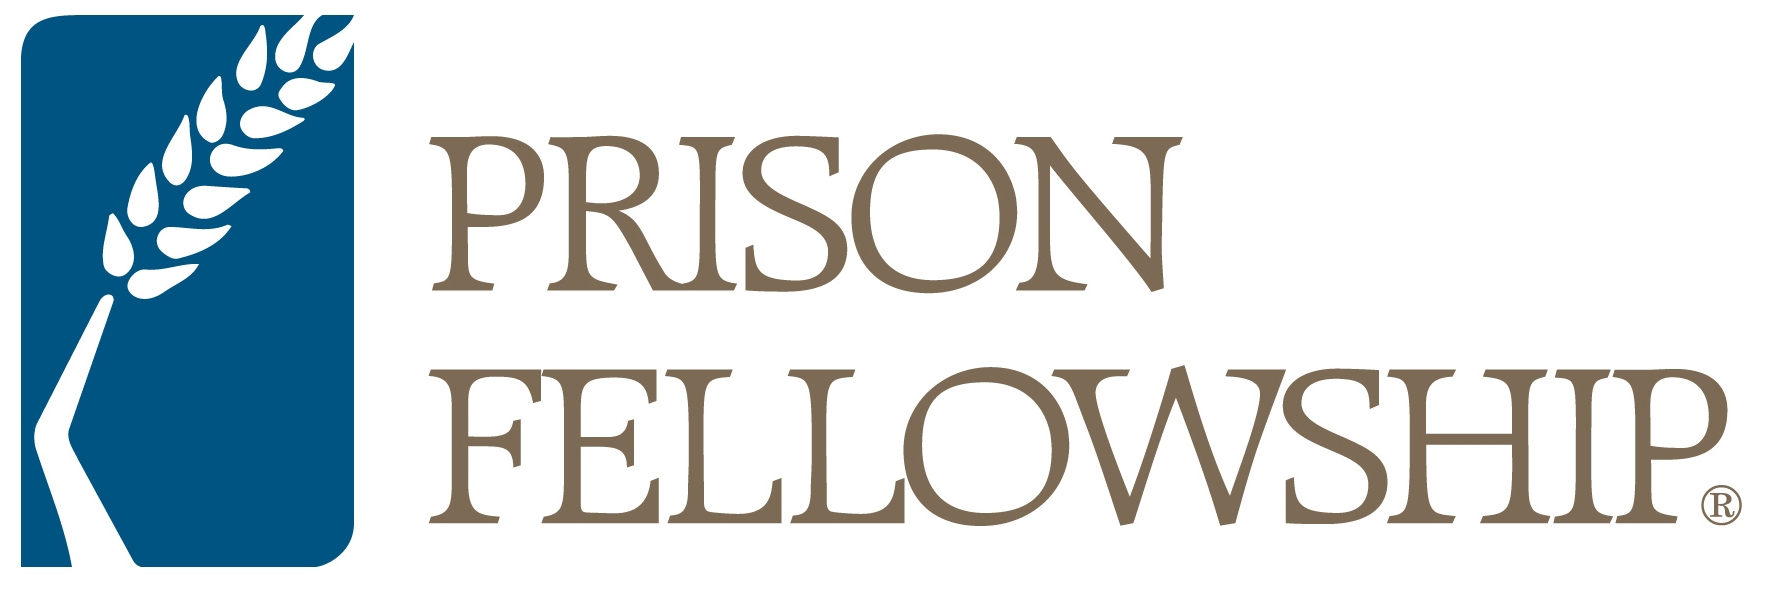 Prison Fellowship logo